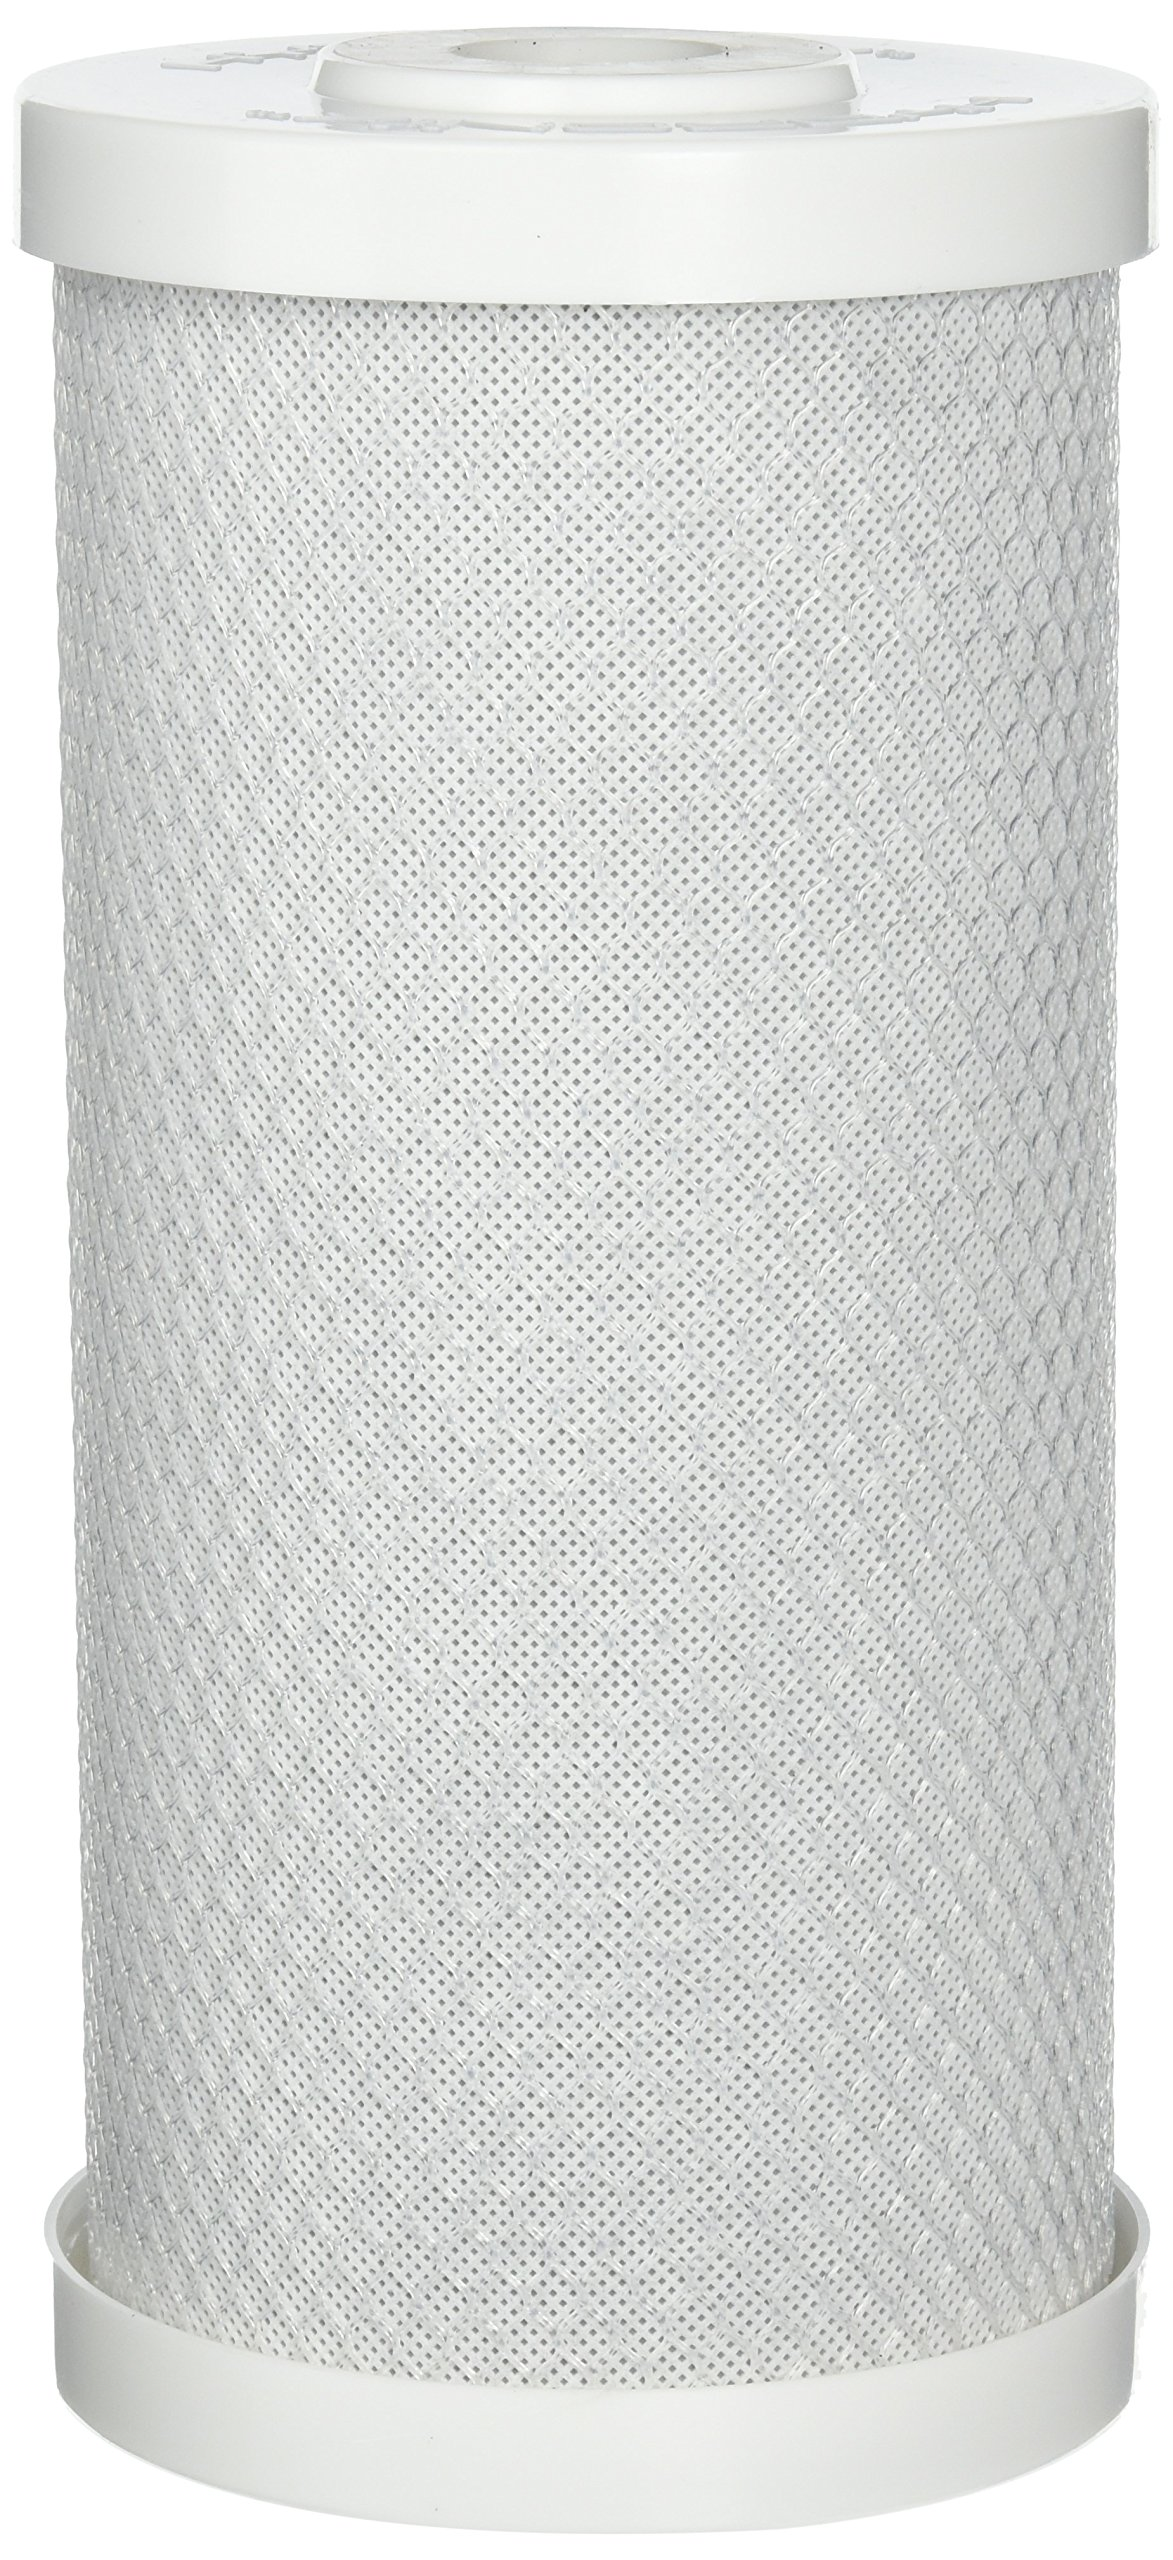 Hydronix CB-45-1010 Whole House or Commercial NSF Coconut Activated Carbon Block Water Filter, 4.5'' x 10'' - 10 Micron